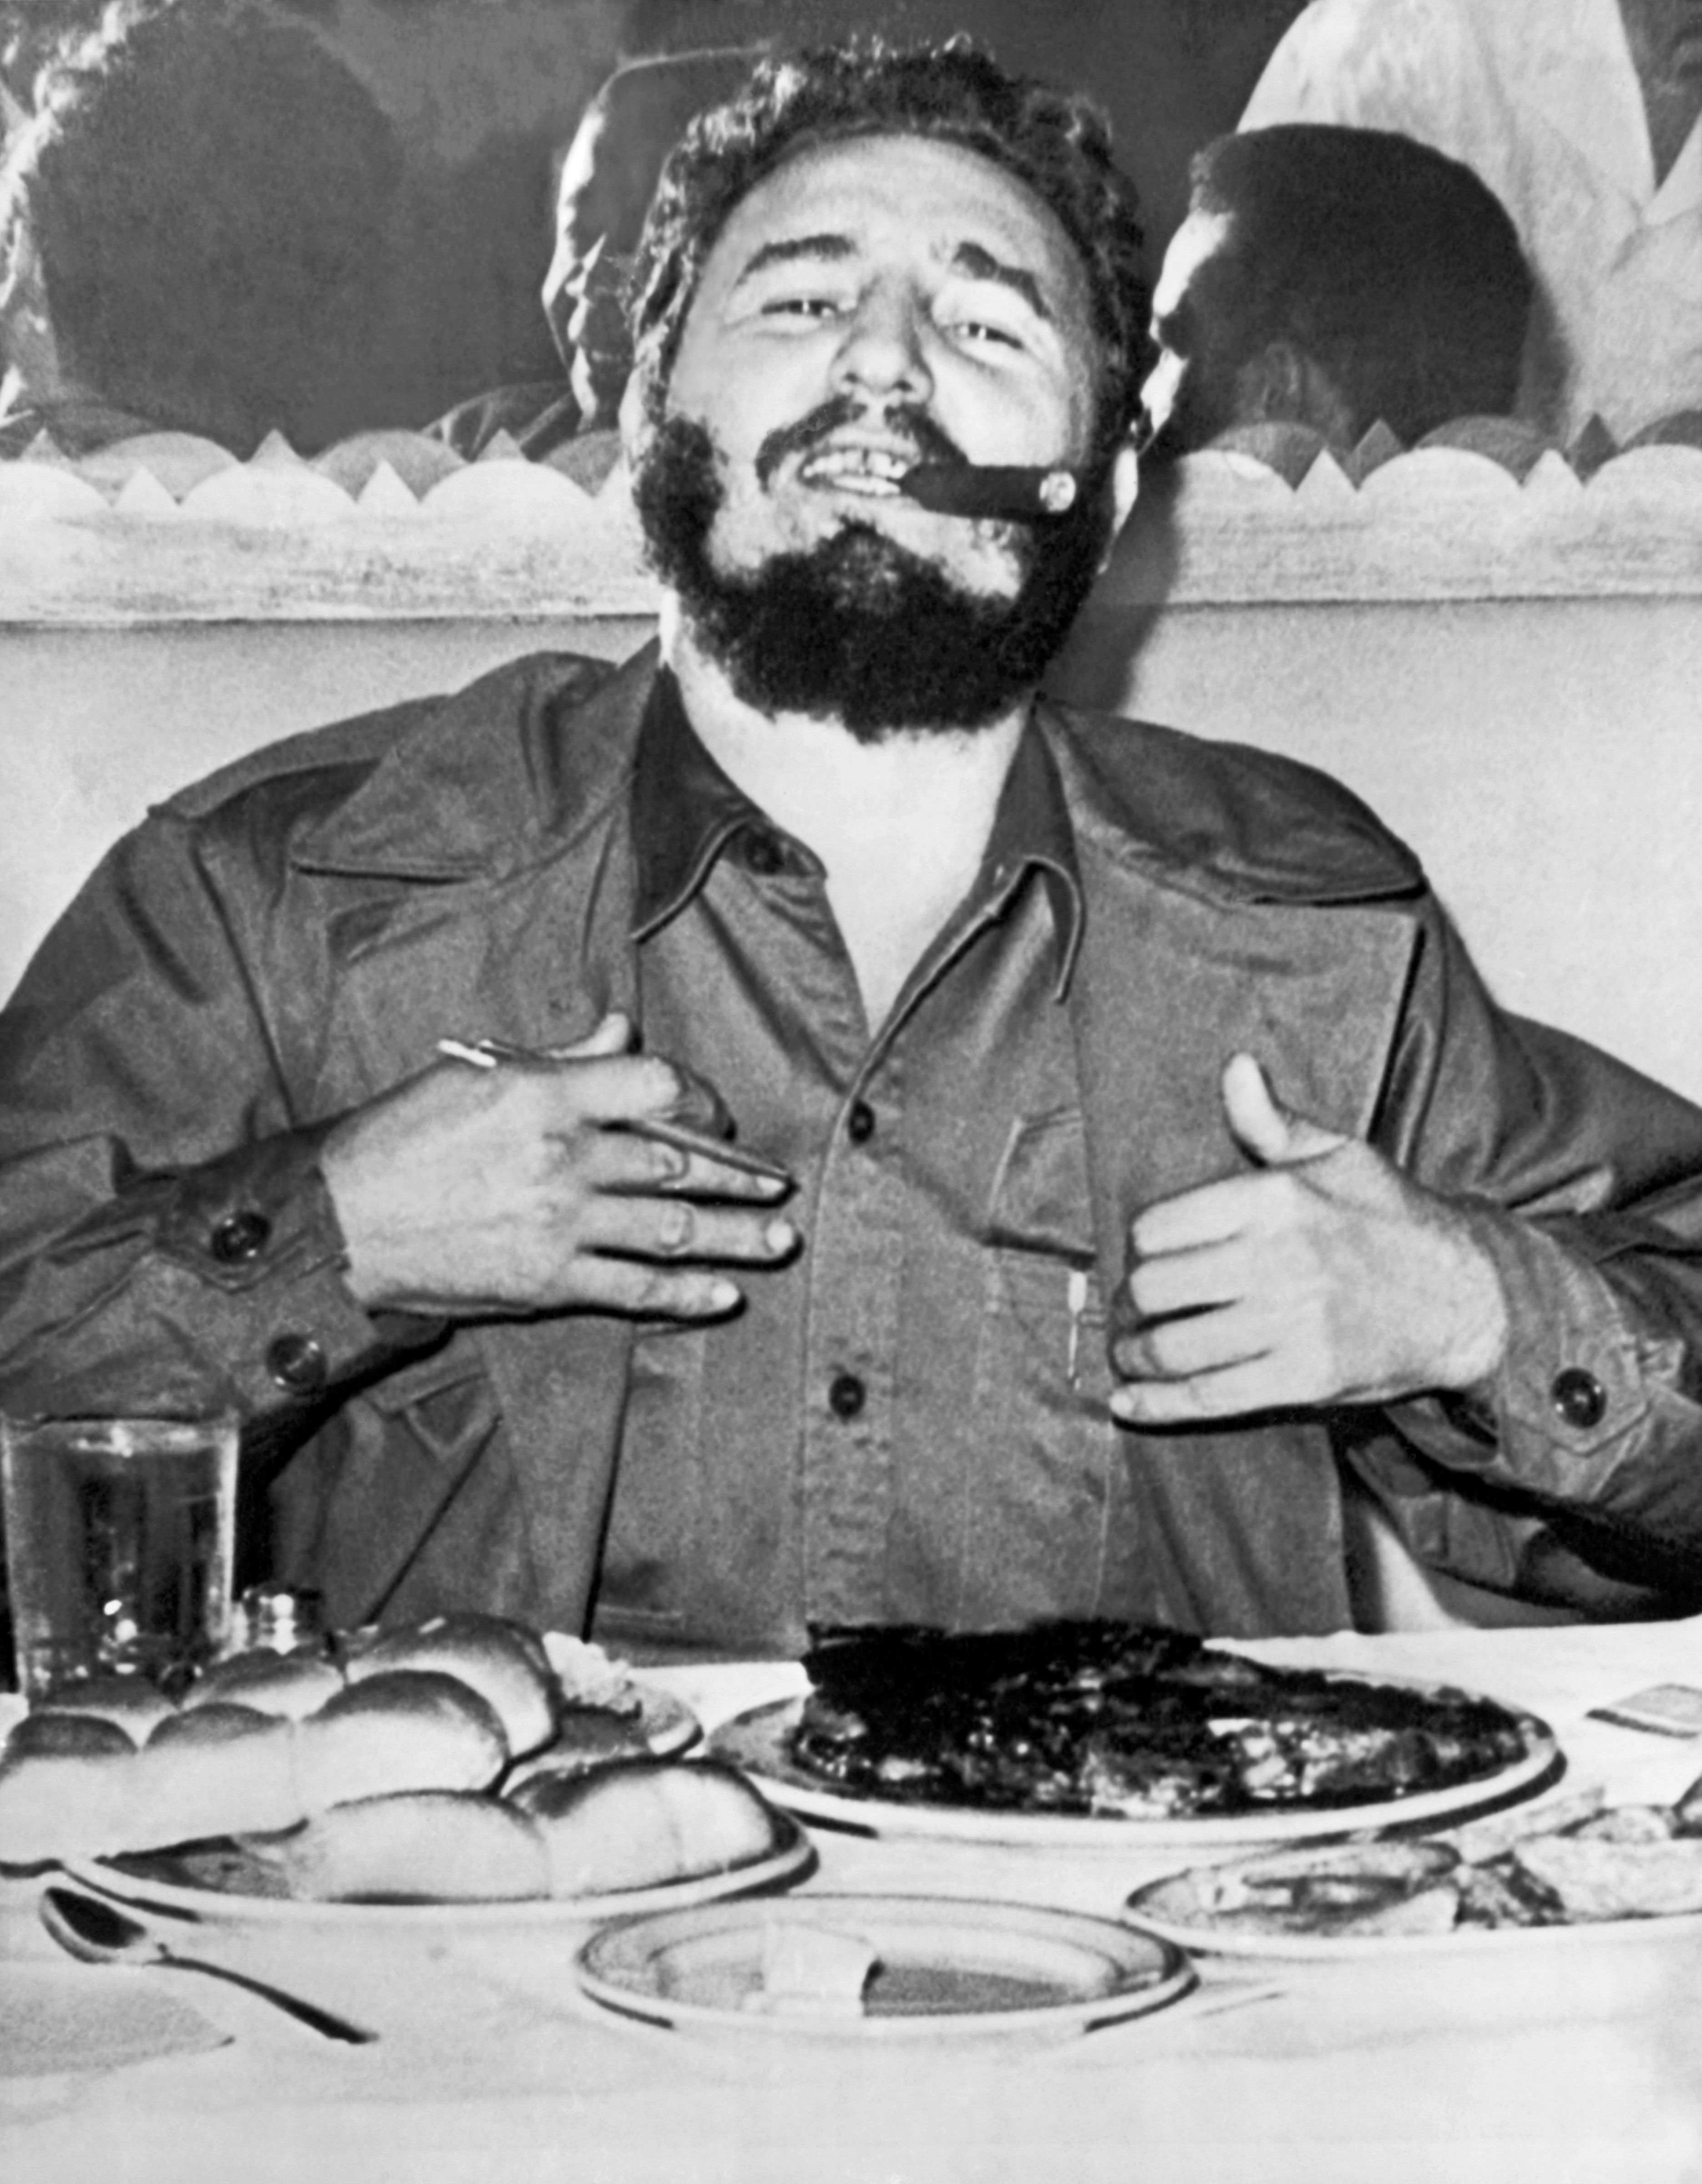 Castro enjoys a steak dinner while holding an impromptu press conference at the Theresa Hotel in Harlem during his visit to N